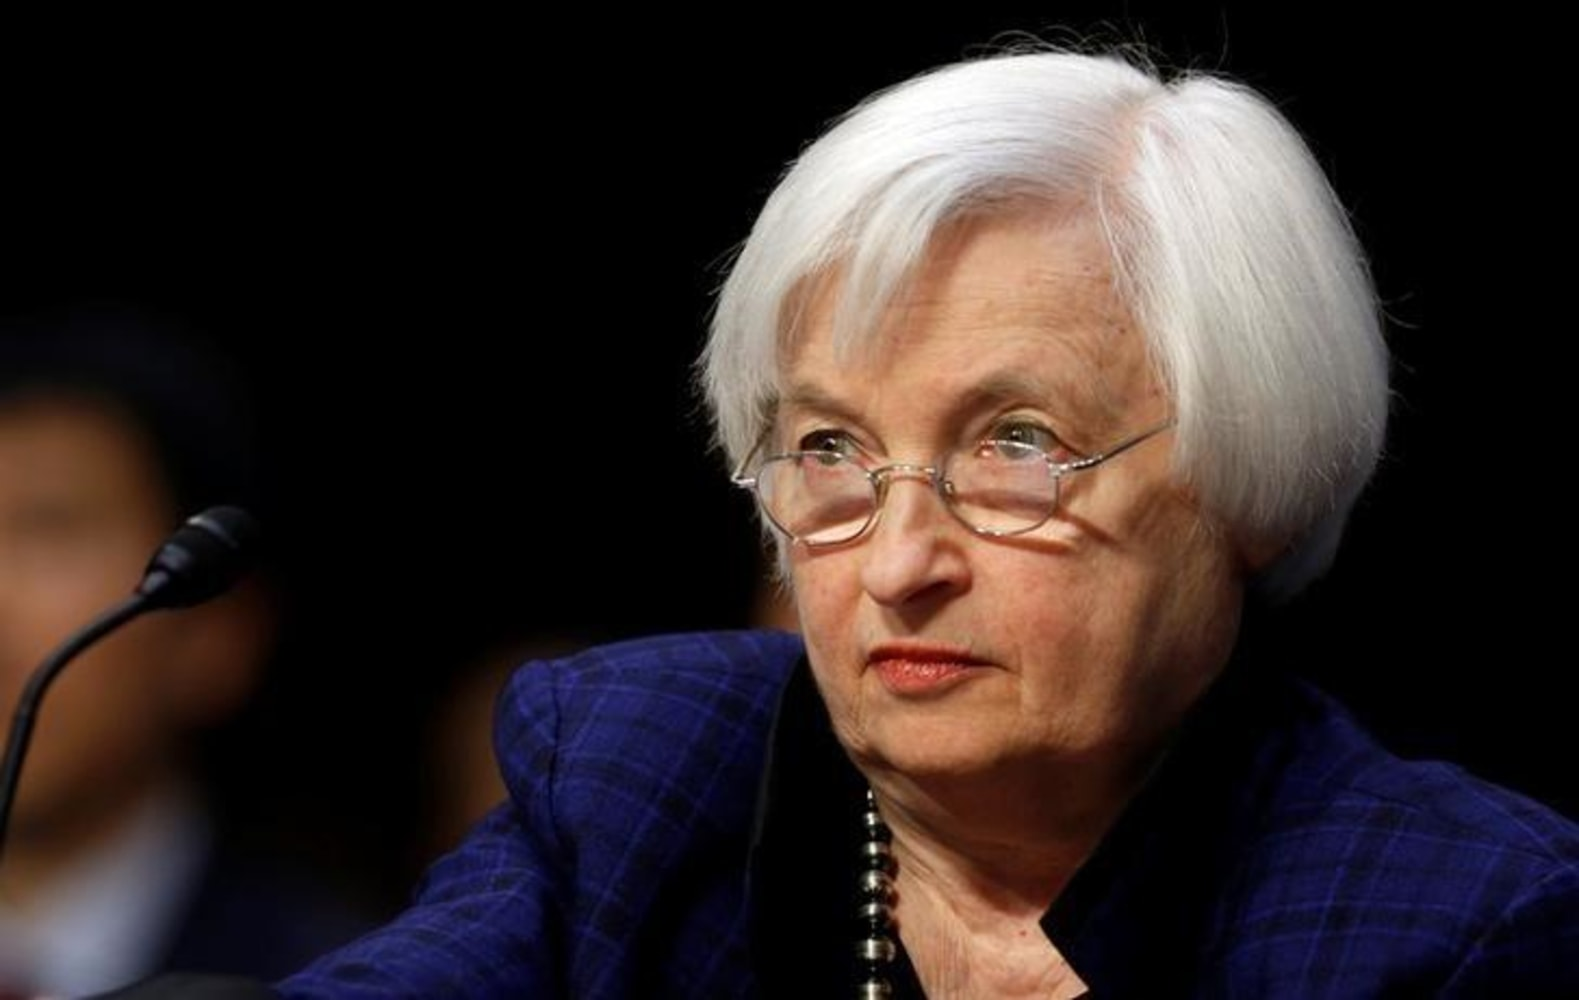 Federal Reserve, buoyed by stronger economy, lifts rates again